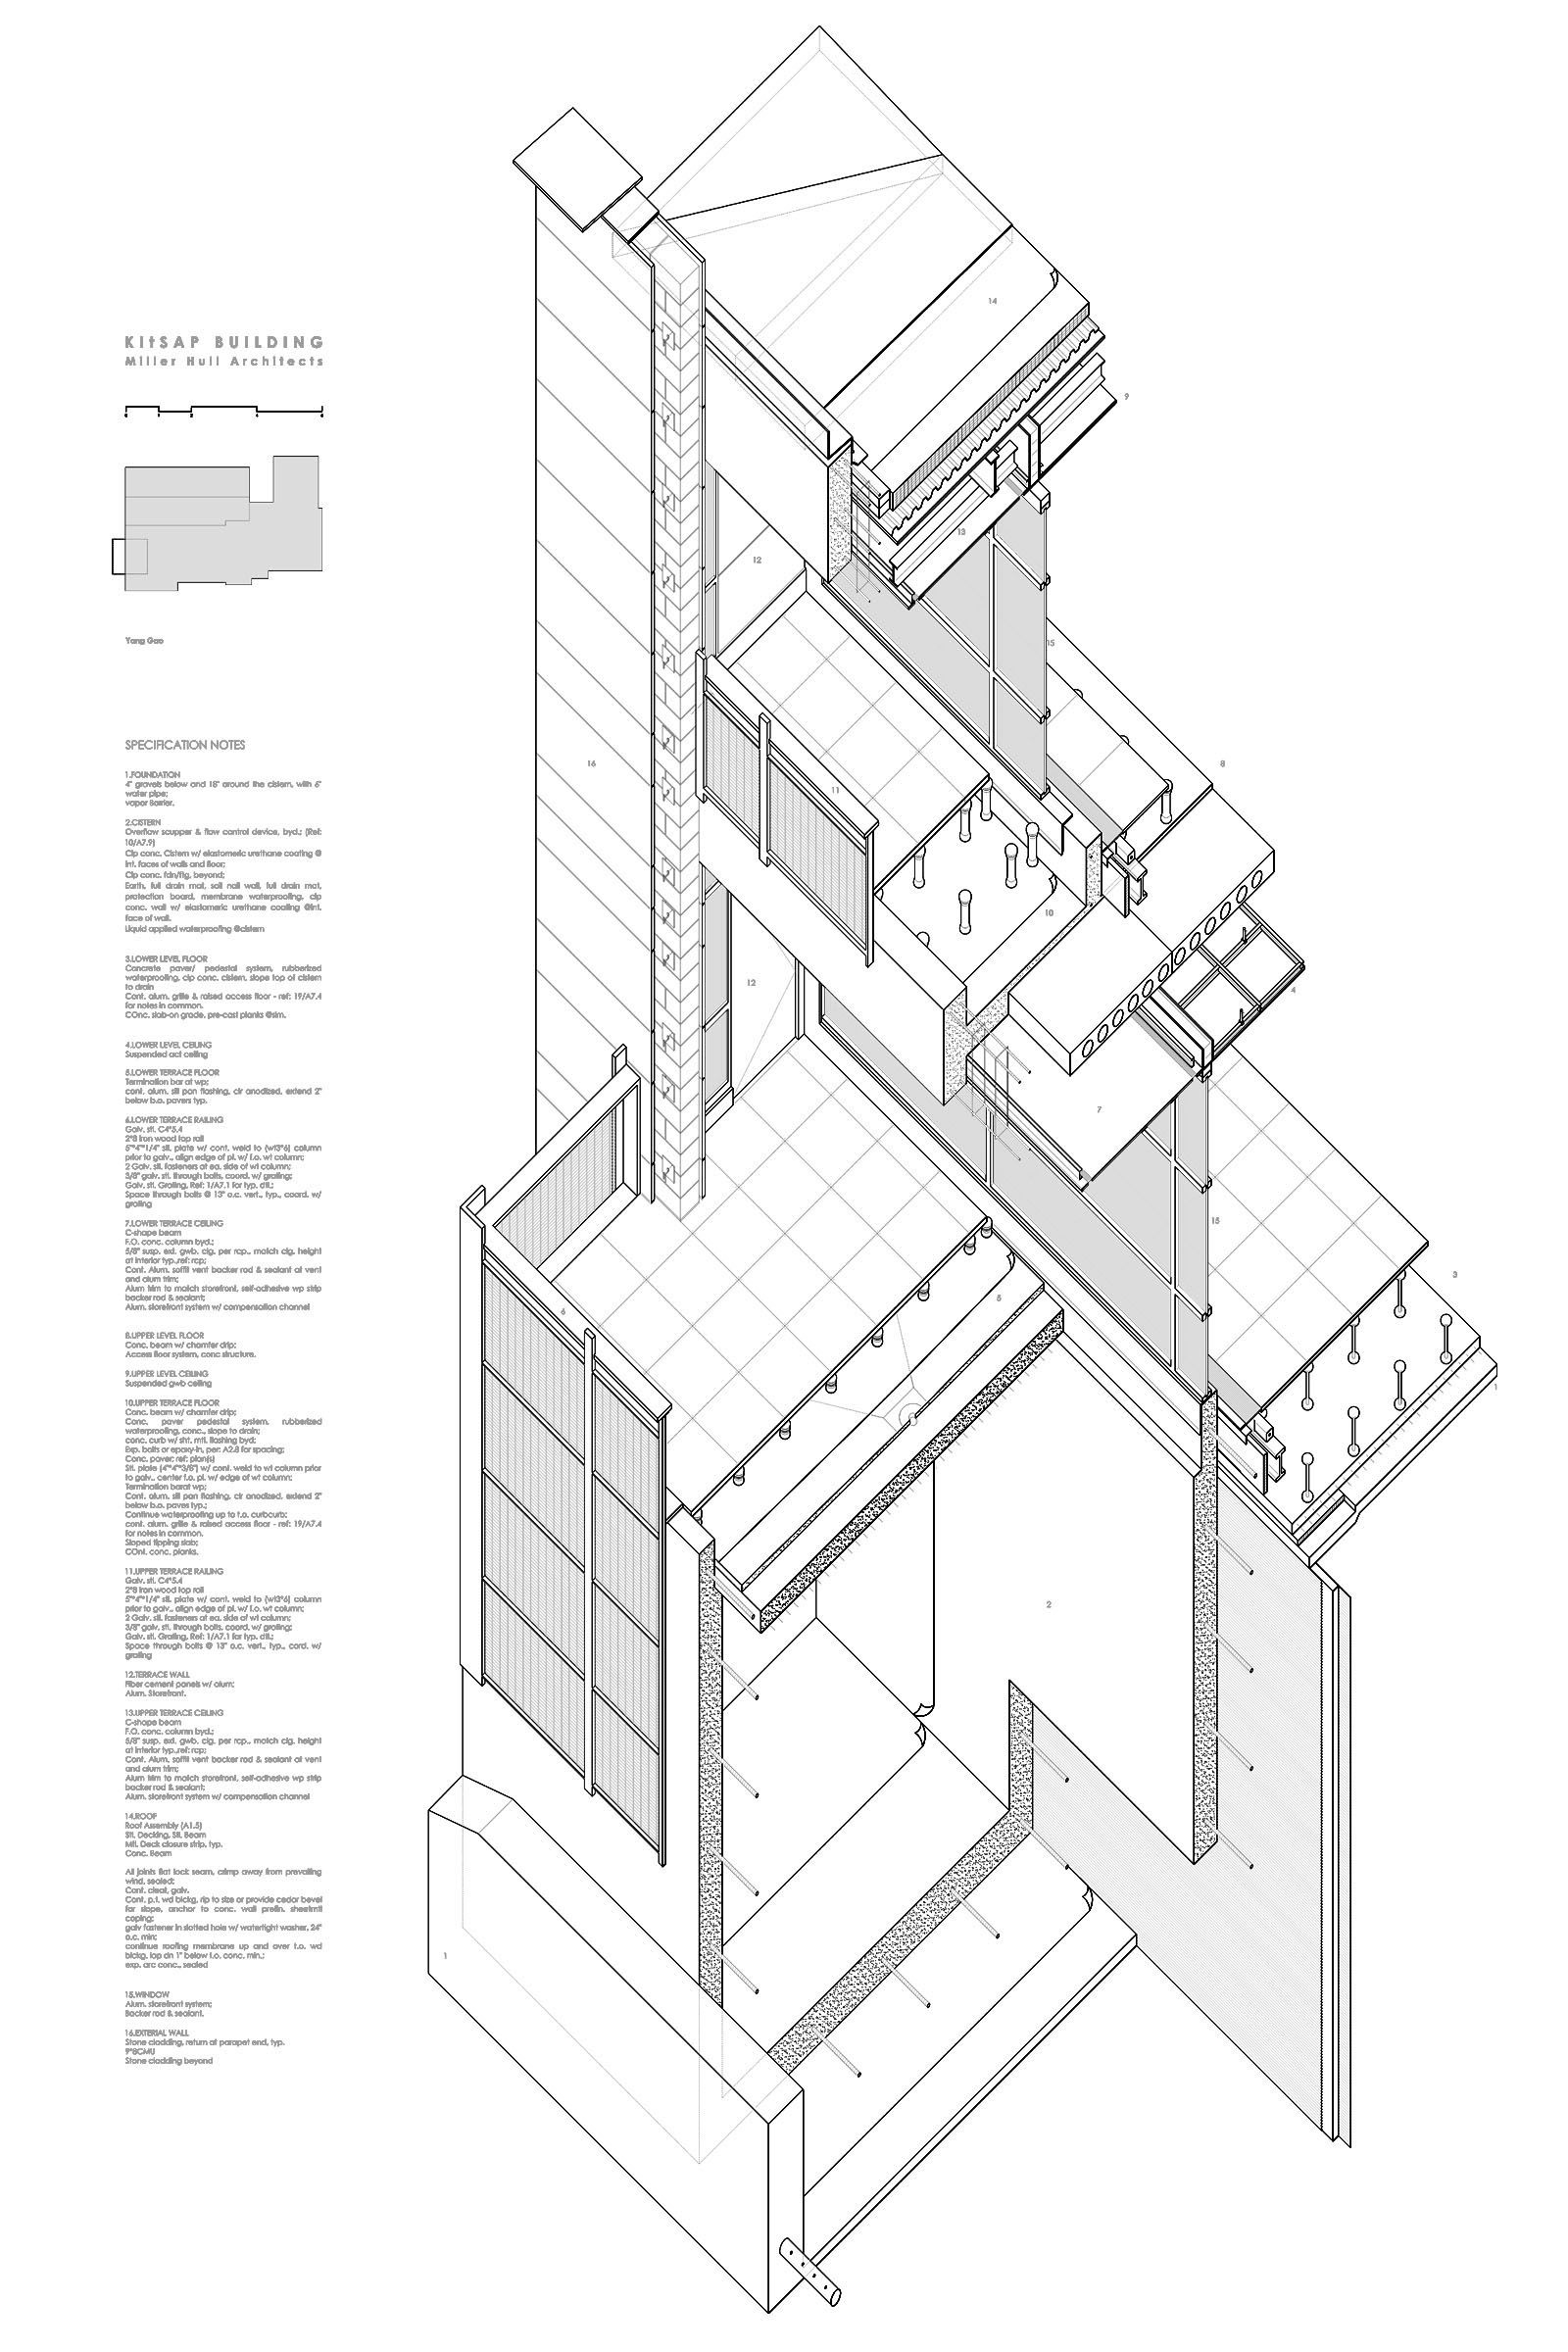 Axonometric Drawing Kitsap Building Designed By A Ortho Iso